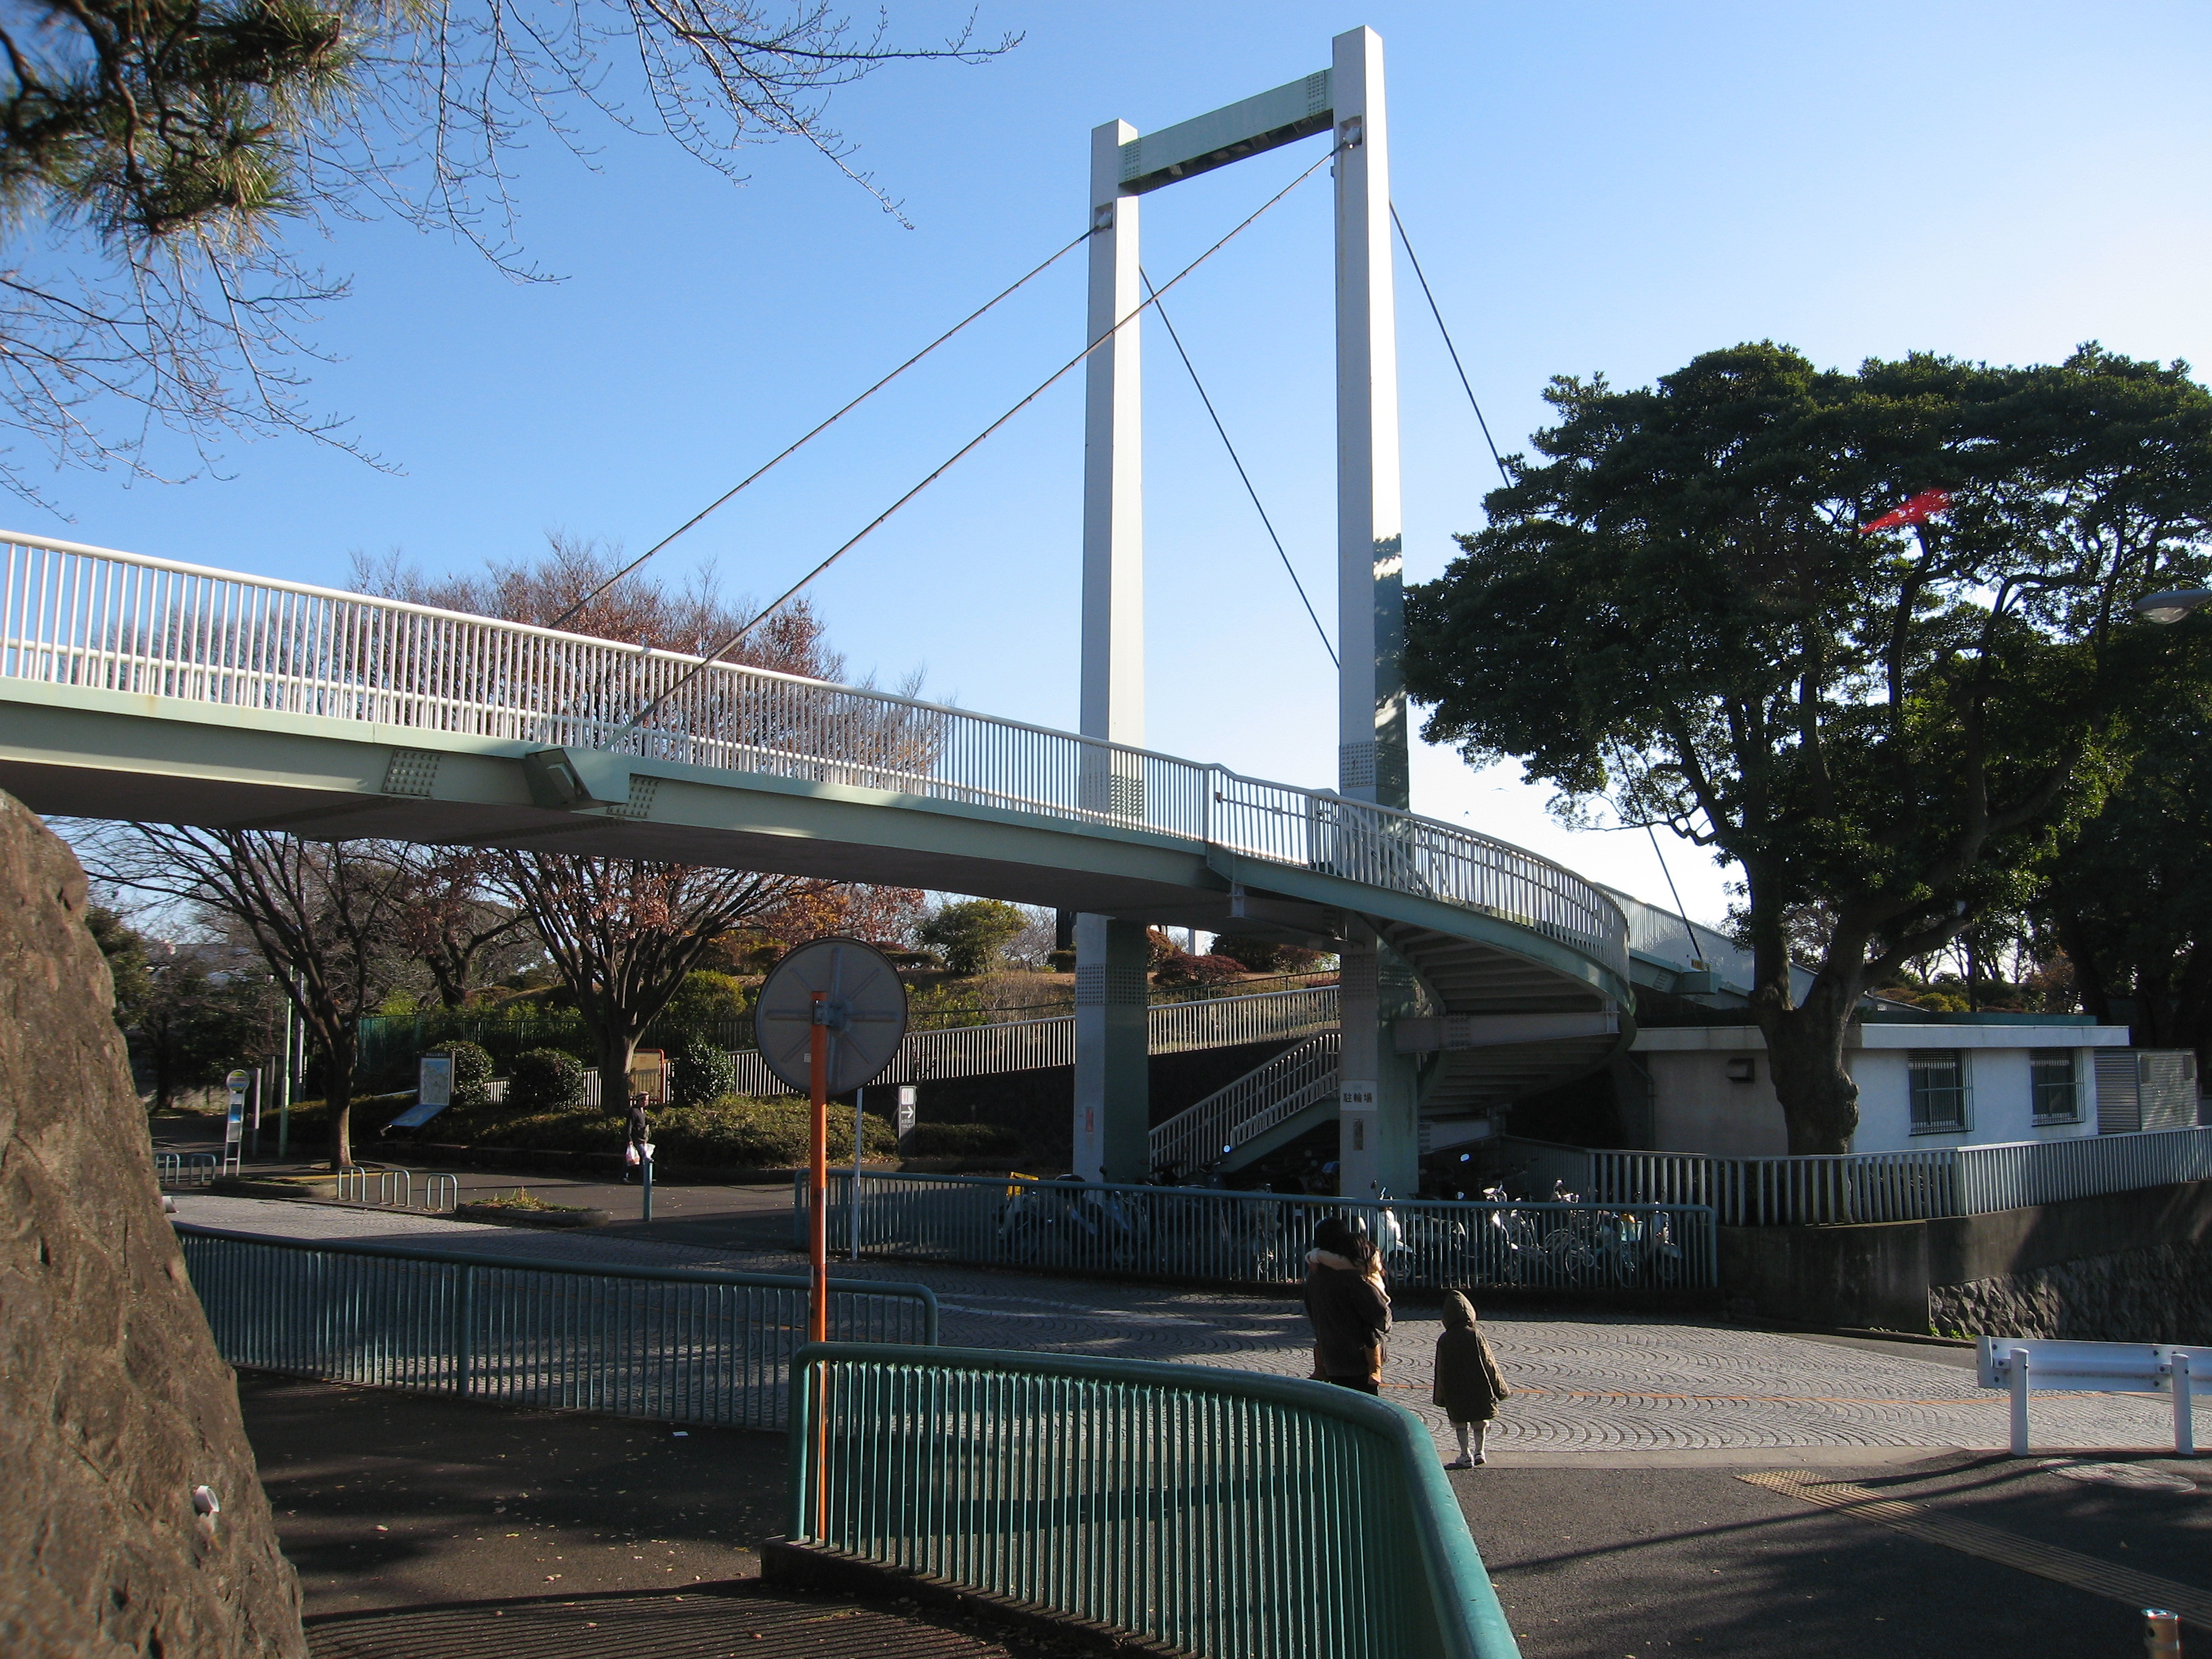 https://upload.wikimedia.org/wikipedia/commons/4/47/Nogeyama_Footbridge.JPG